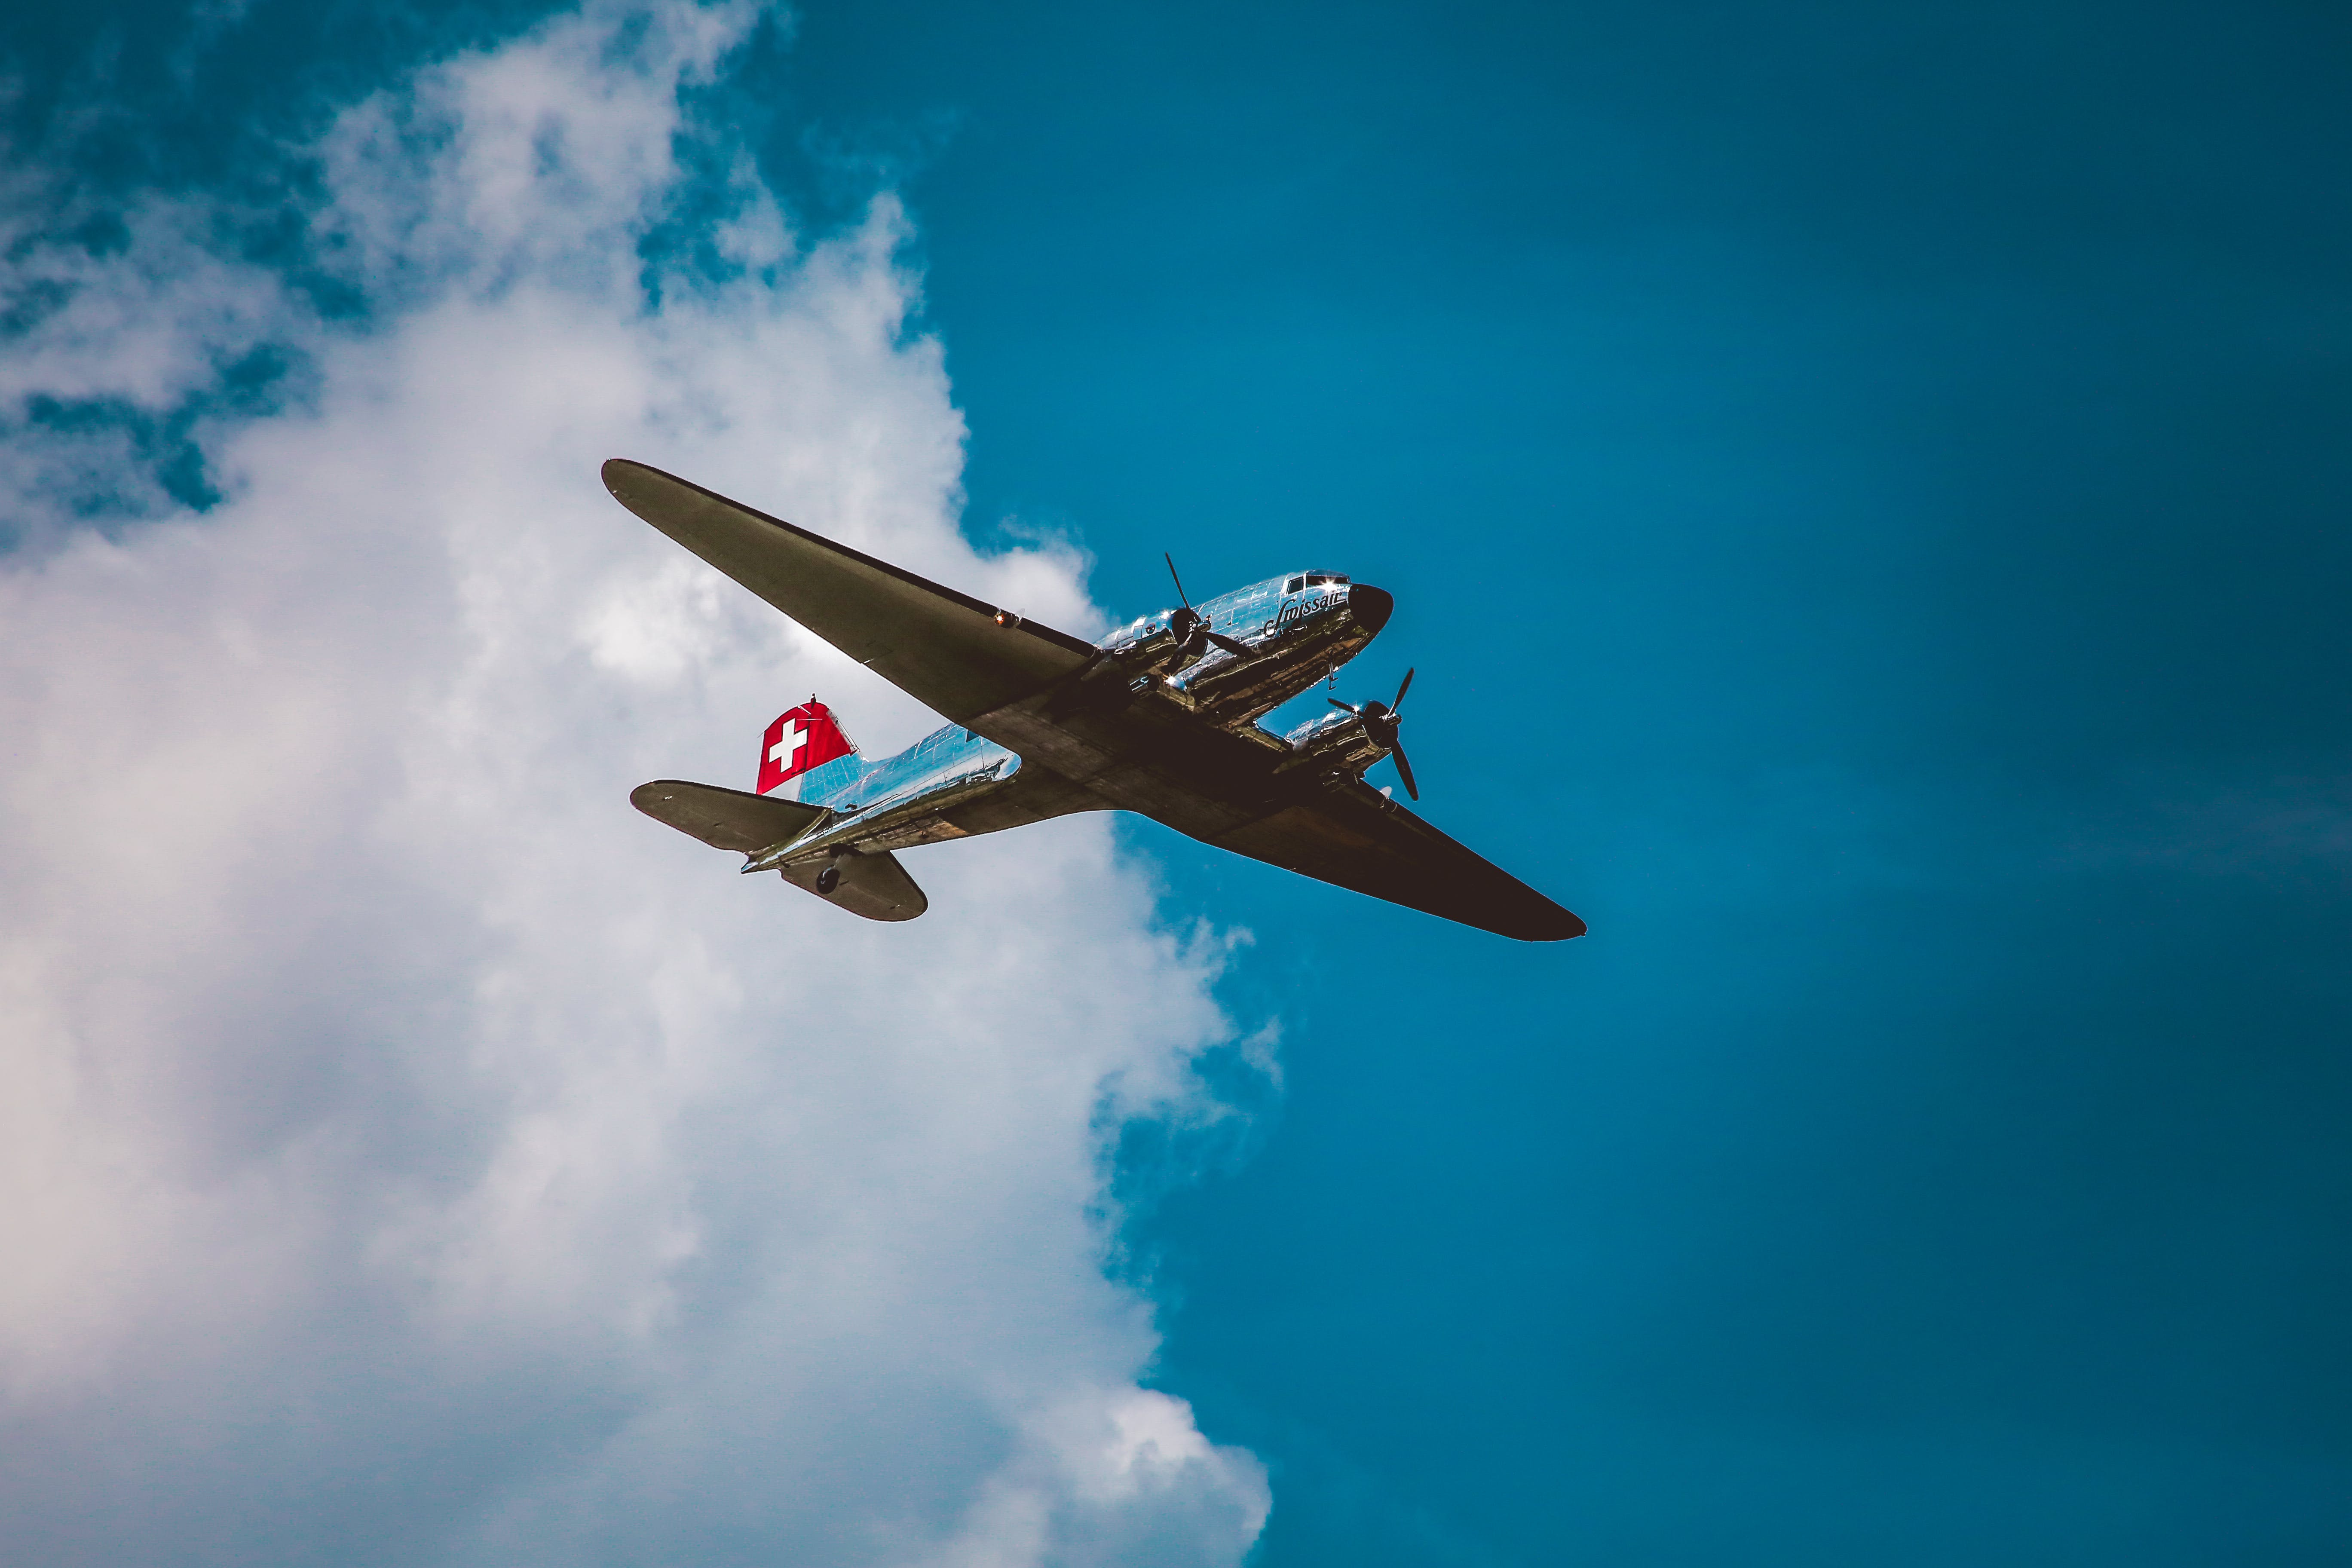 Photo Of An Airplane